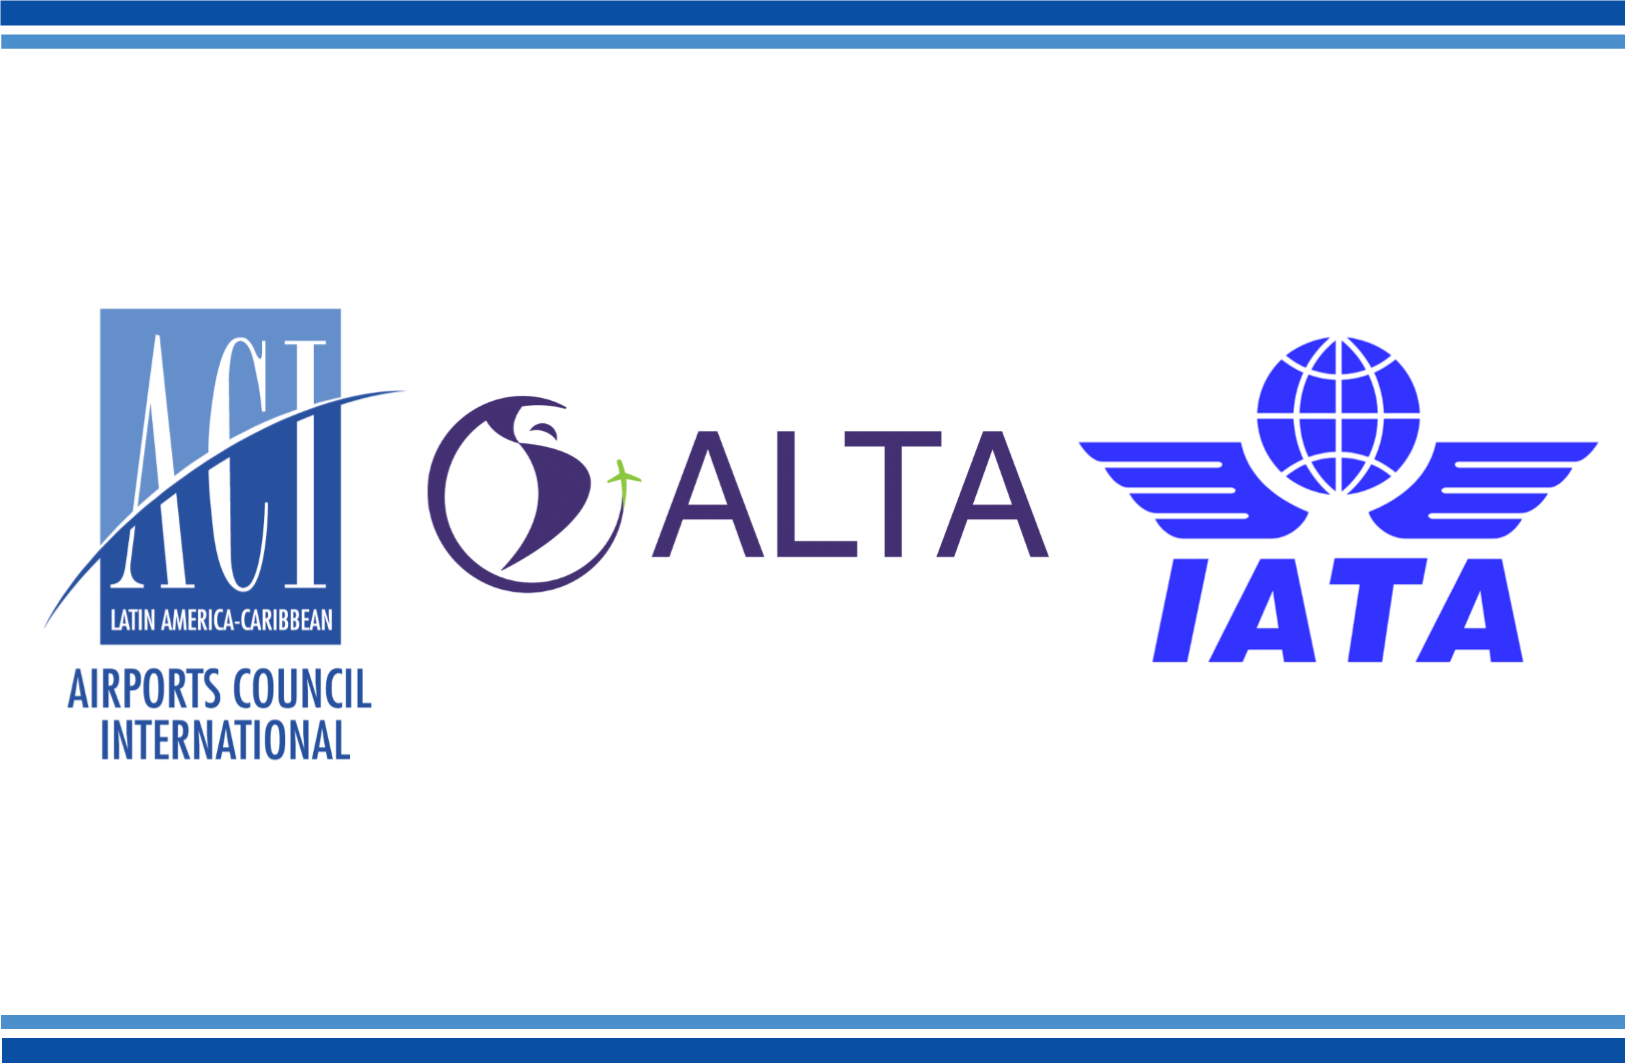 aci lac iata aci lac and alta call for coordinated approach by latin american and caribbean governments to reopen air transport aci lac iata aci lac and alta call